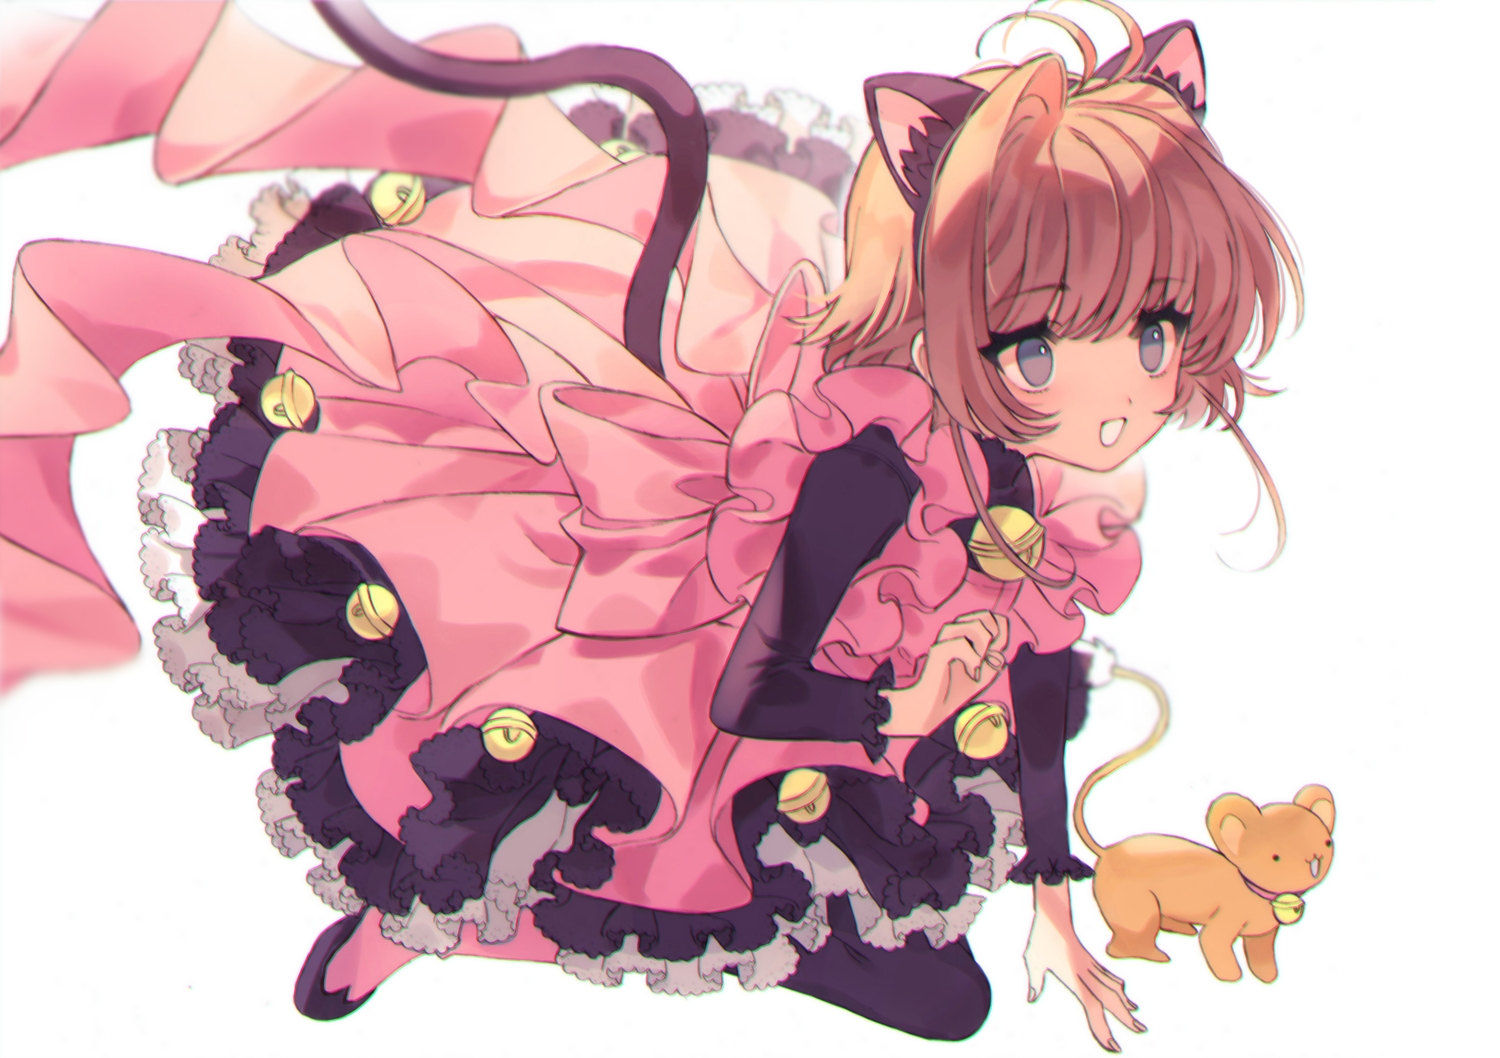 animal_ears bell card_captor_sakura catgirl kero kinomoto_sakura lolita_fashion tail yasiromann